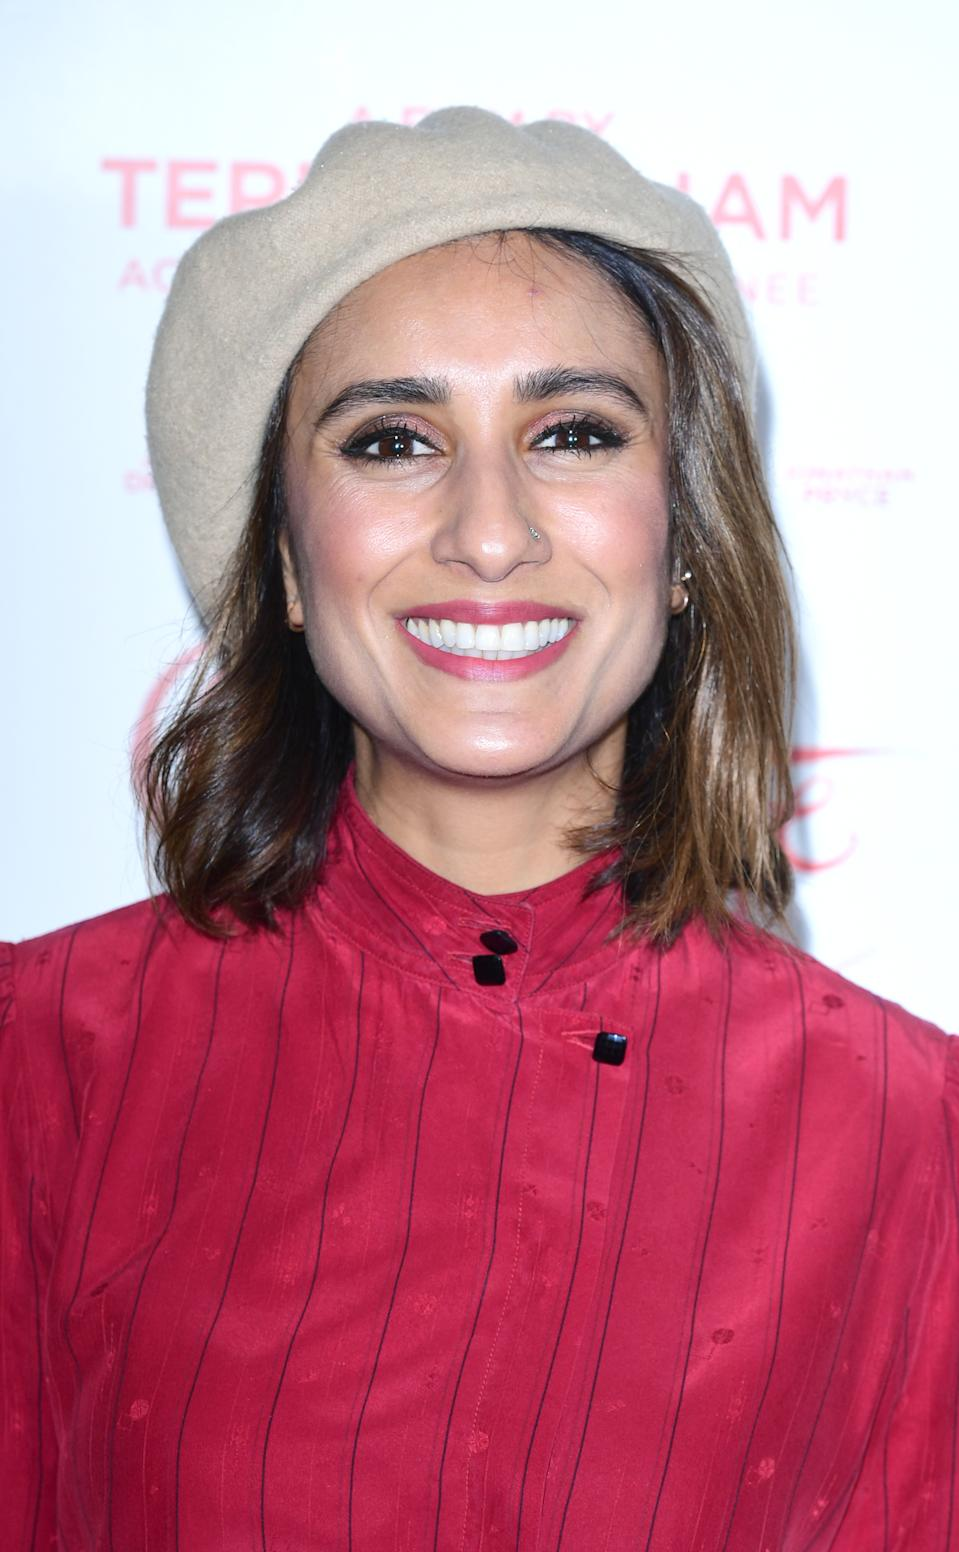 Anita Rani wants to use her platform to raise awareness about miscarriage, pictured at a screening of The Man Who Killed Don Quixote in London. (PA Images)